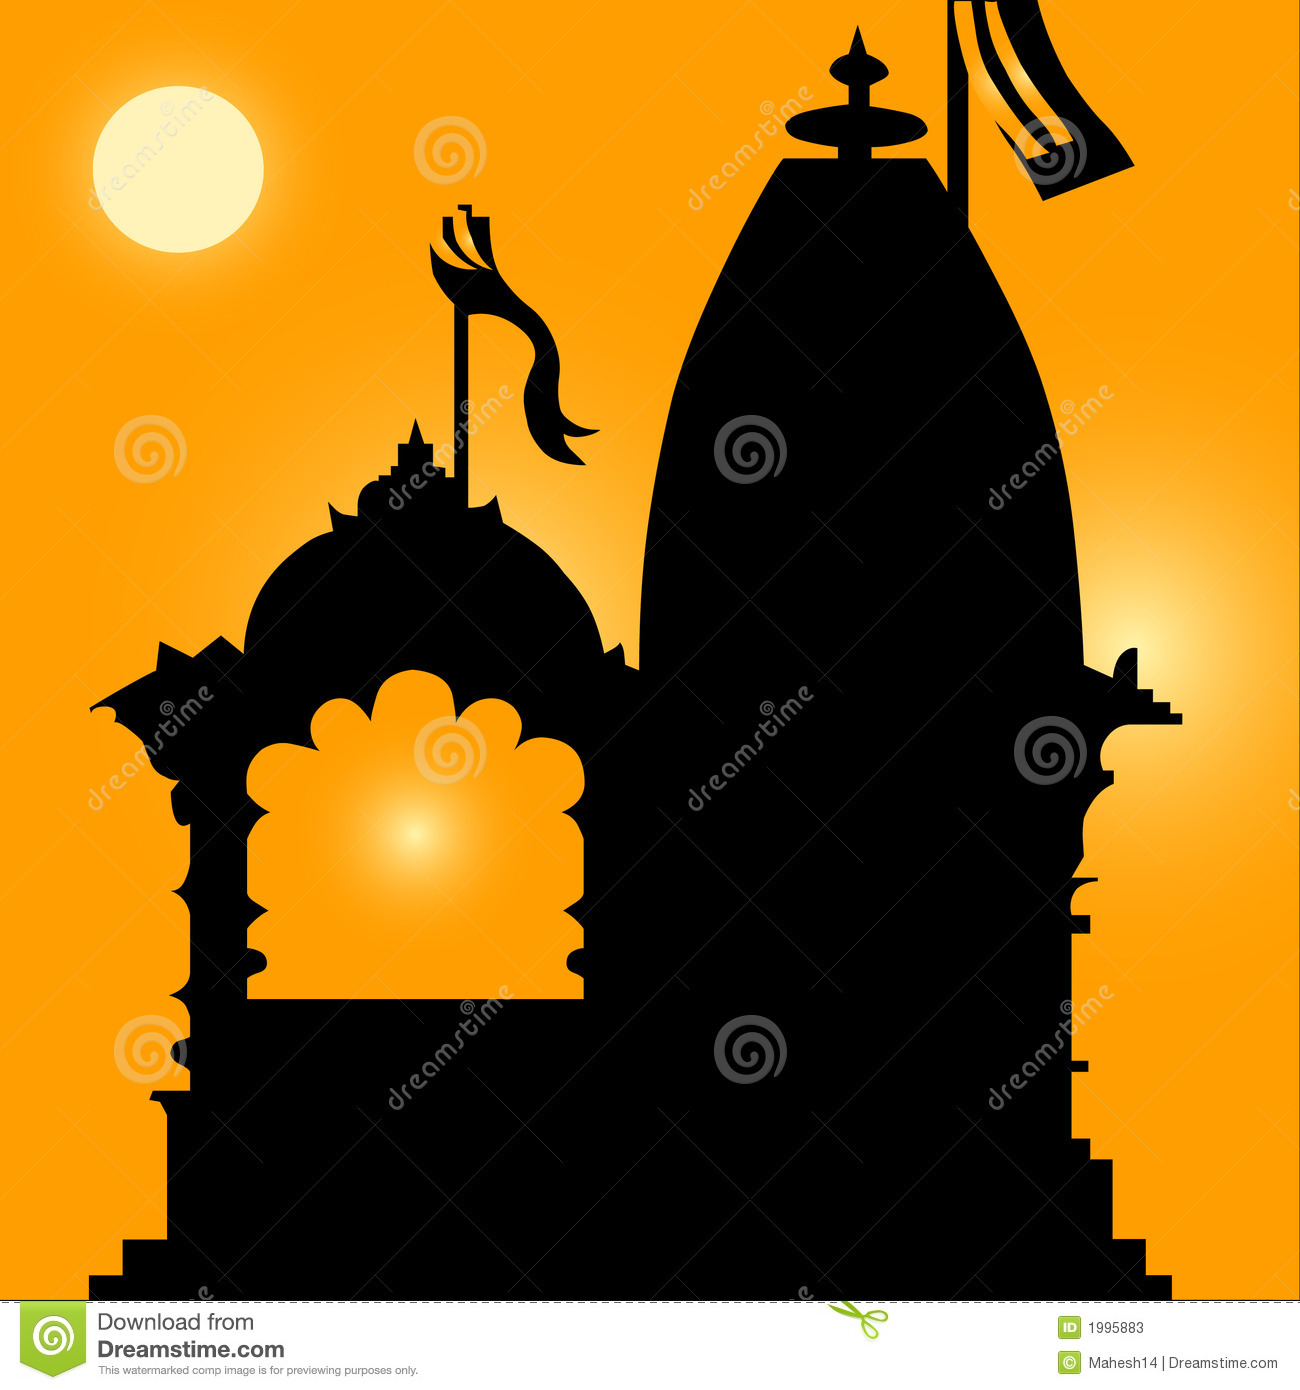 Hindu temple clipart images.